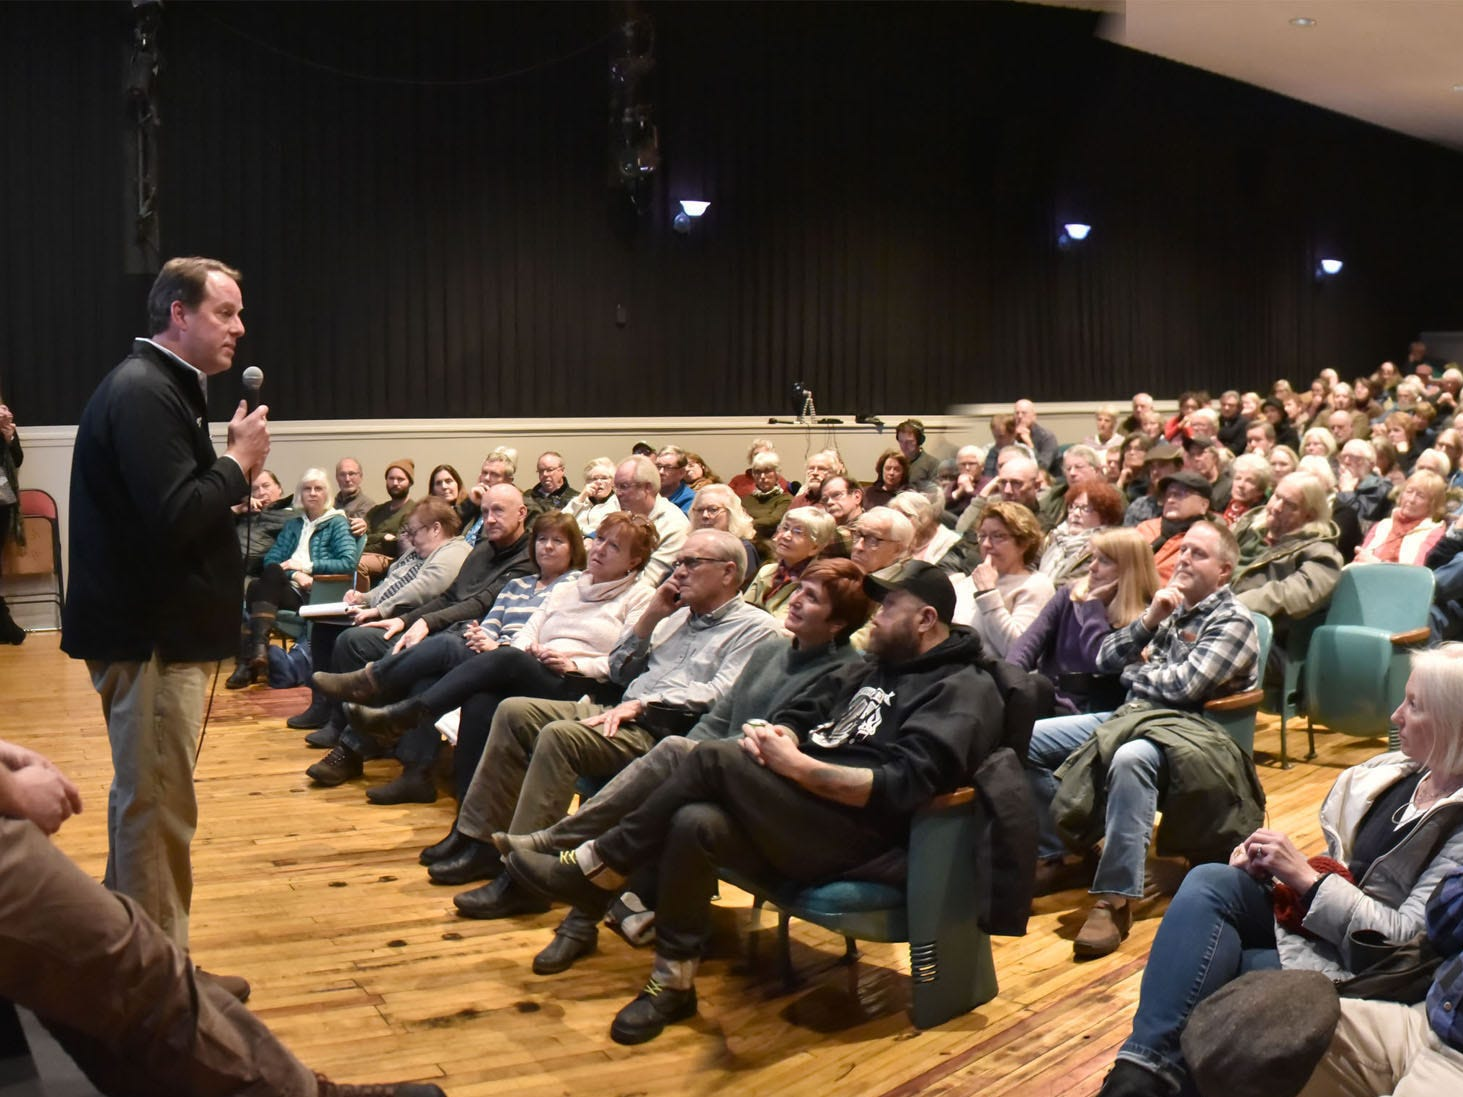 Rick Schmitt of the Garden Theater in Frankfort, Michigan, addresses an overflow crowd at a community forum Tuesday, Dec. 11, 2018 in Suttons Bay. The 200-seat Bay theater is slated for closure at the end of the month, and the forum was held in hopes of finding a way to keep it  operating.